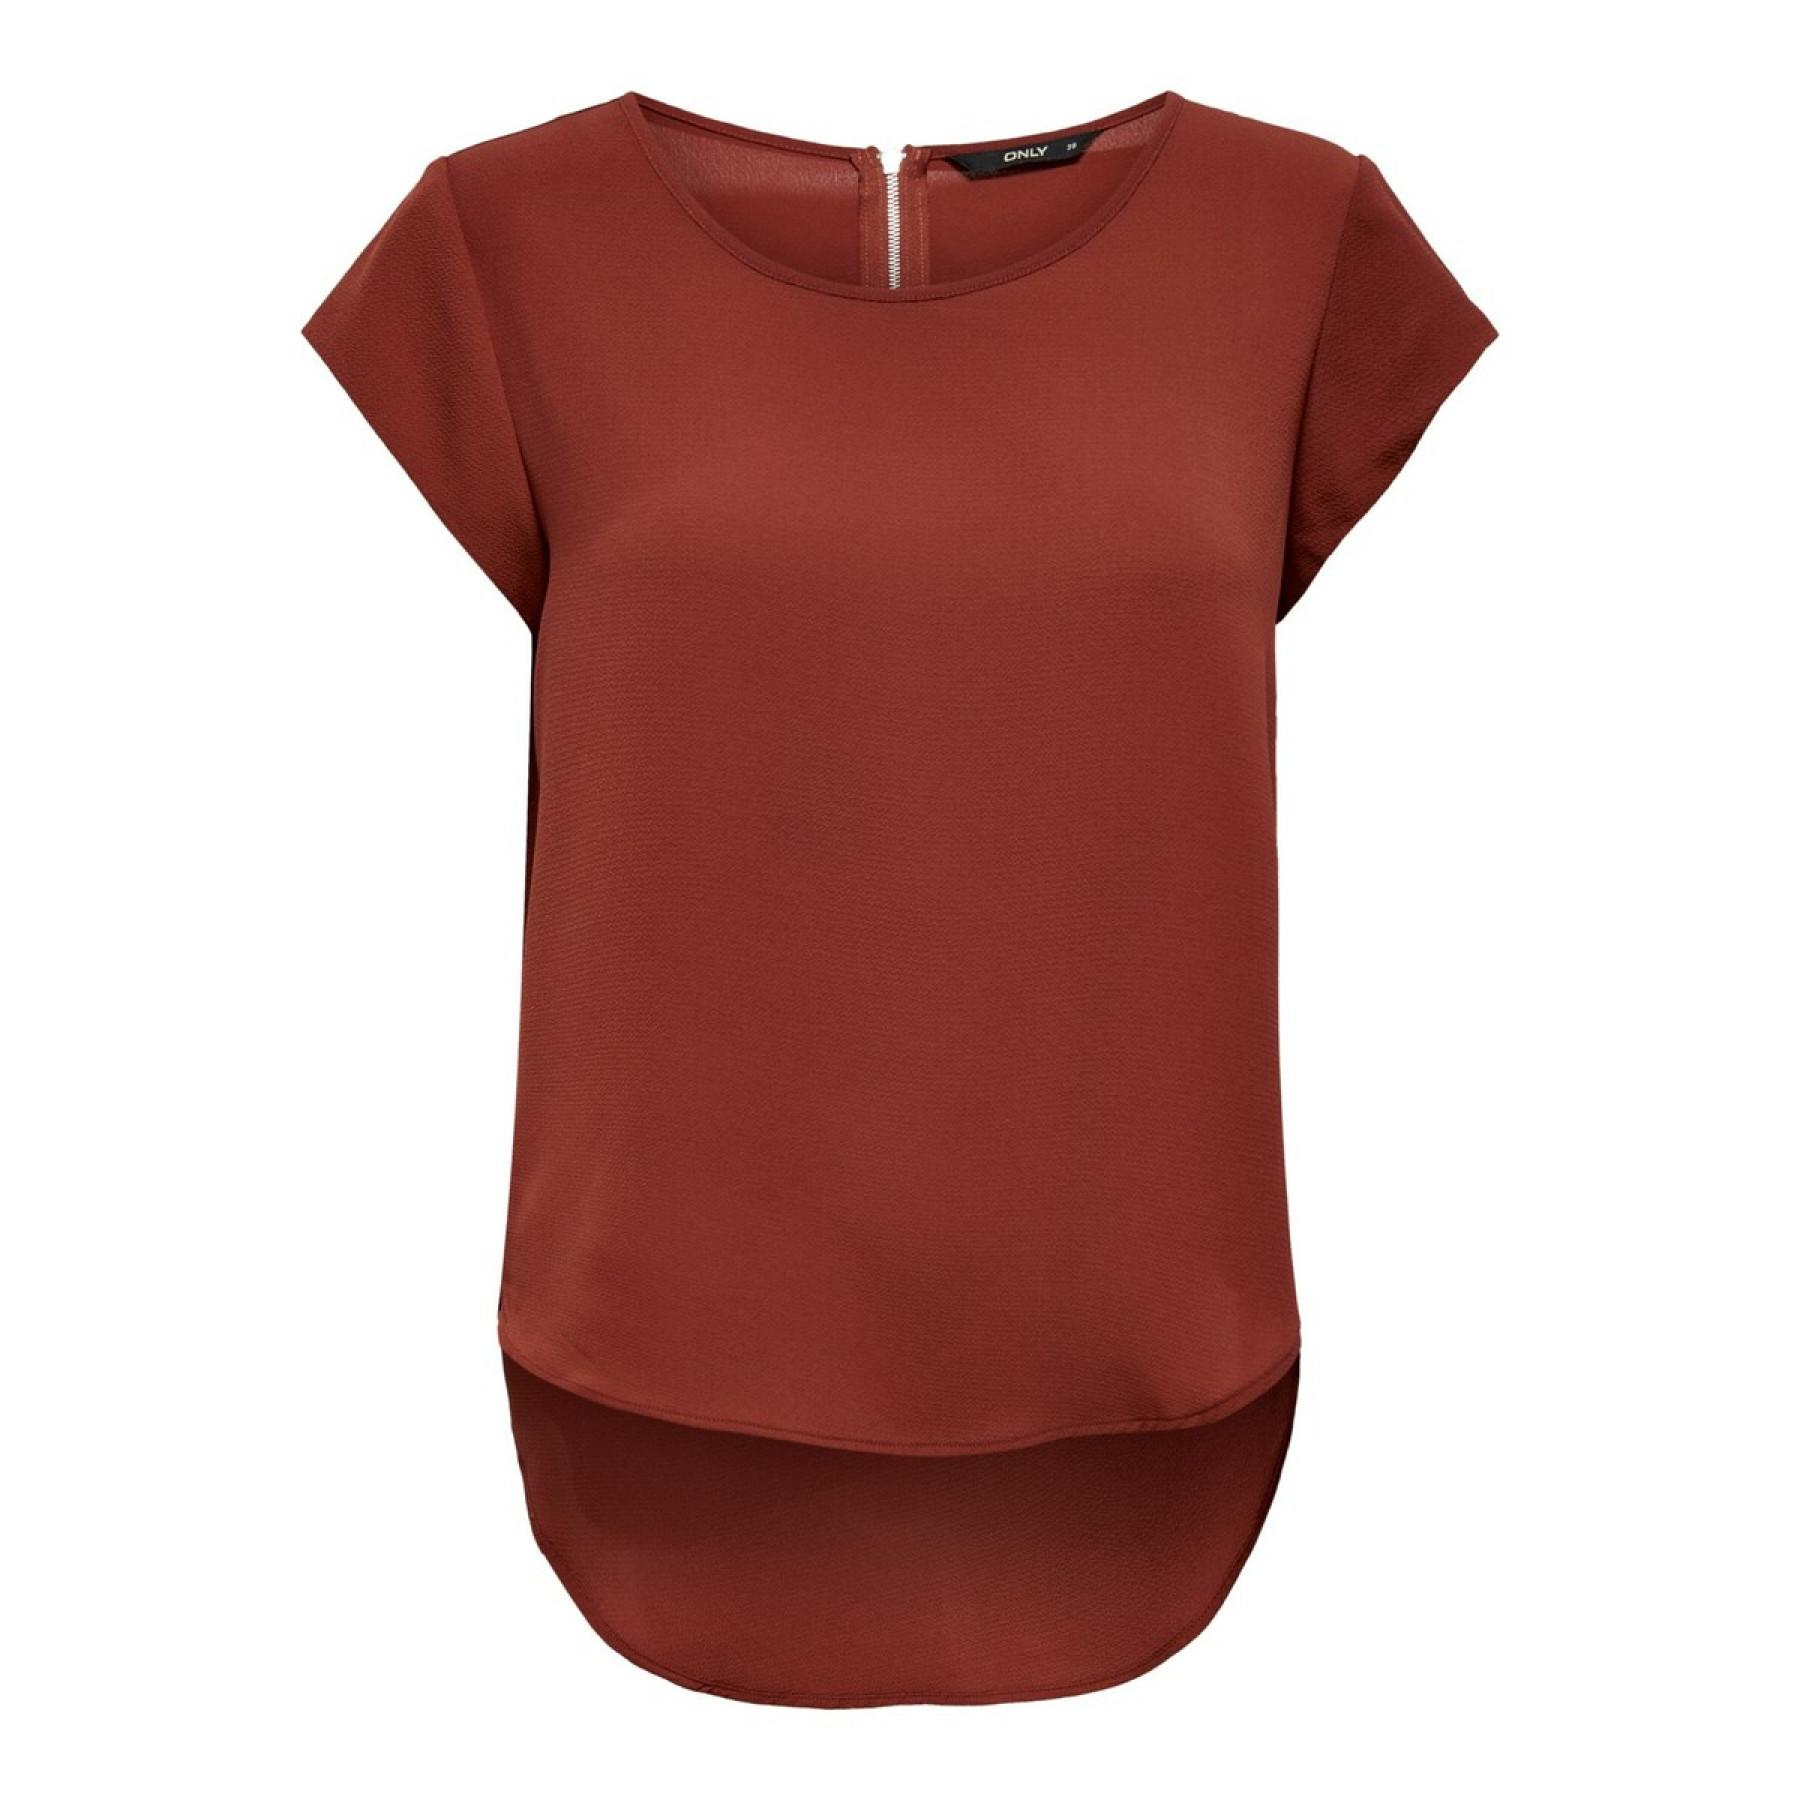 Women's T-shirt Only short sleeves Vic solid